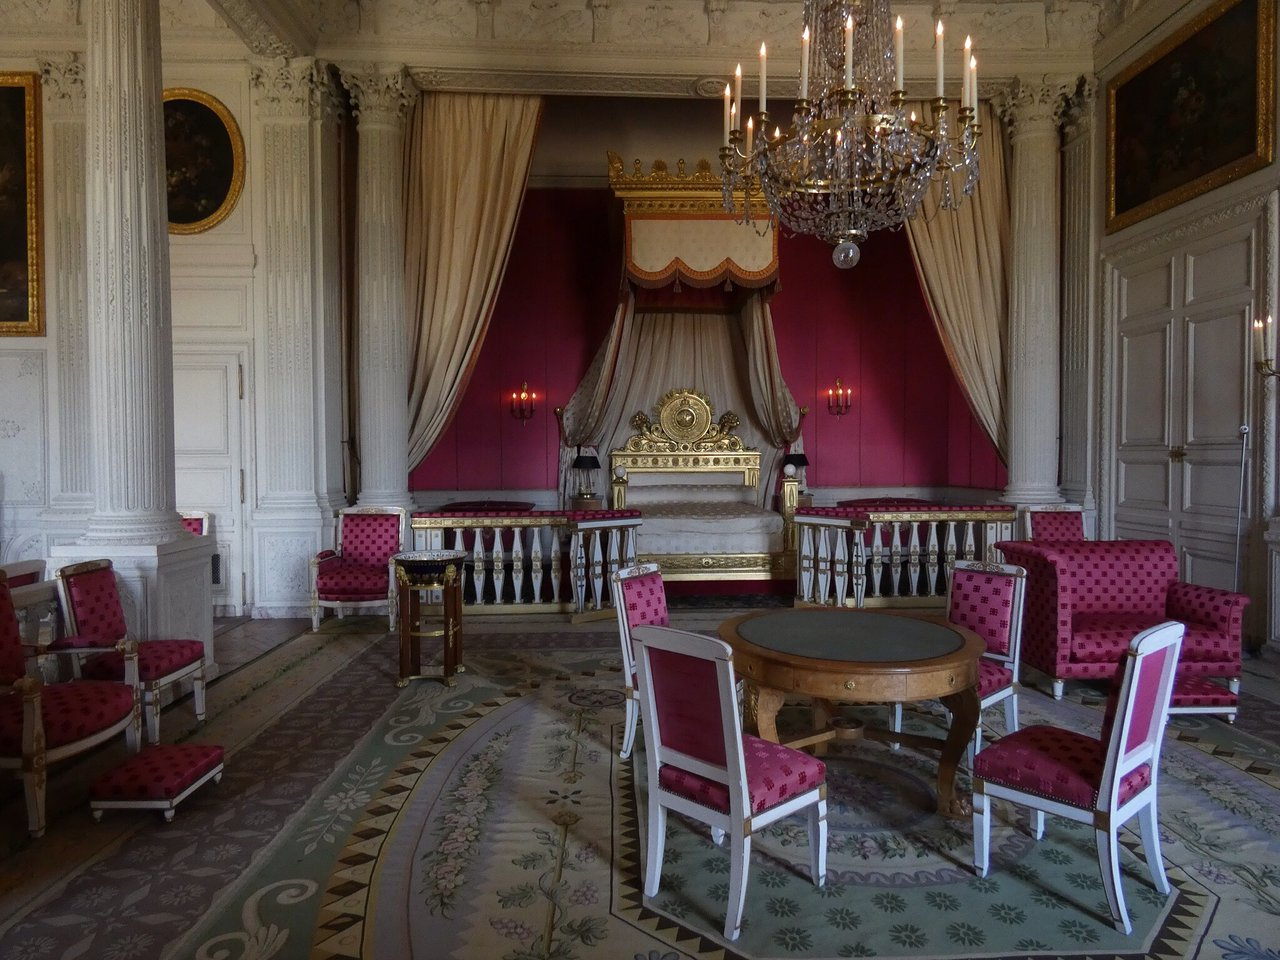 Baguette En Bois Decorative le grand trianon (versailles) - 2020 all you need to know